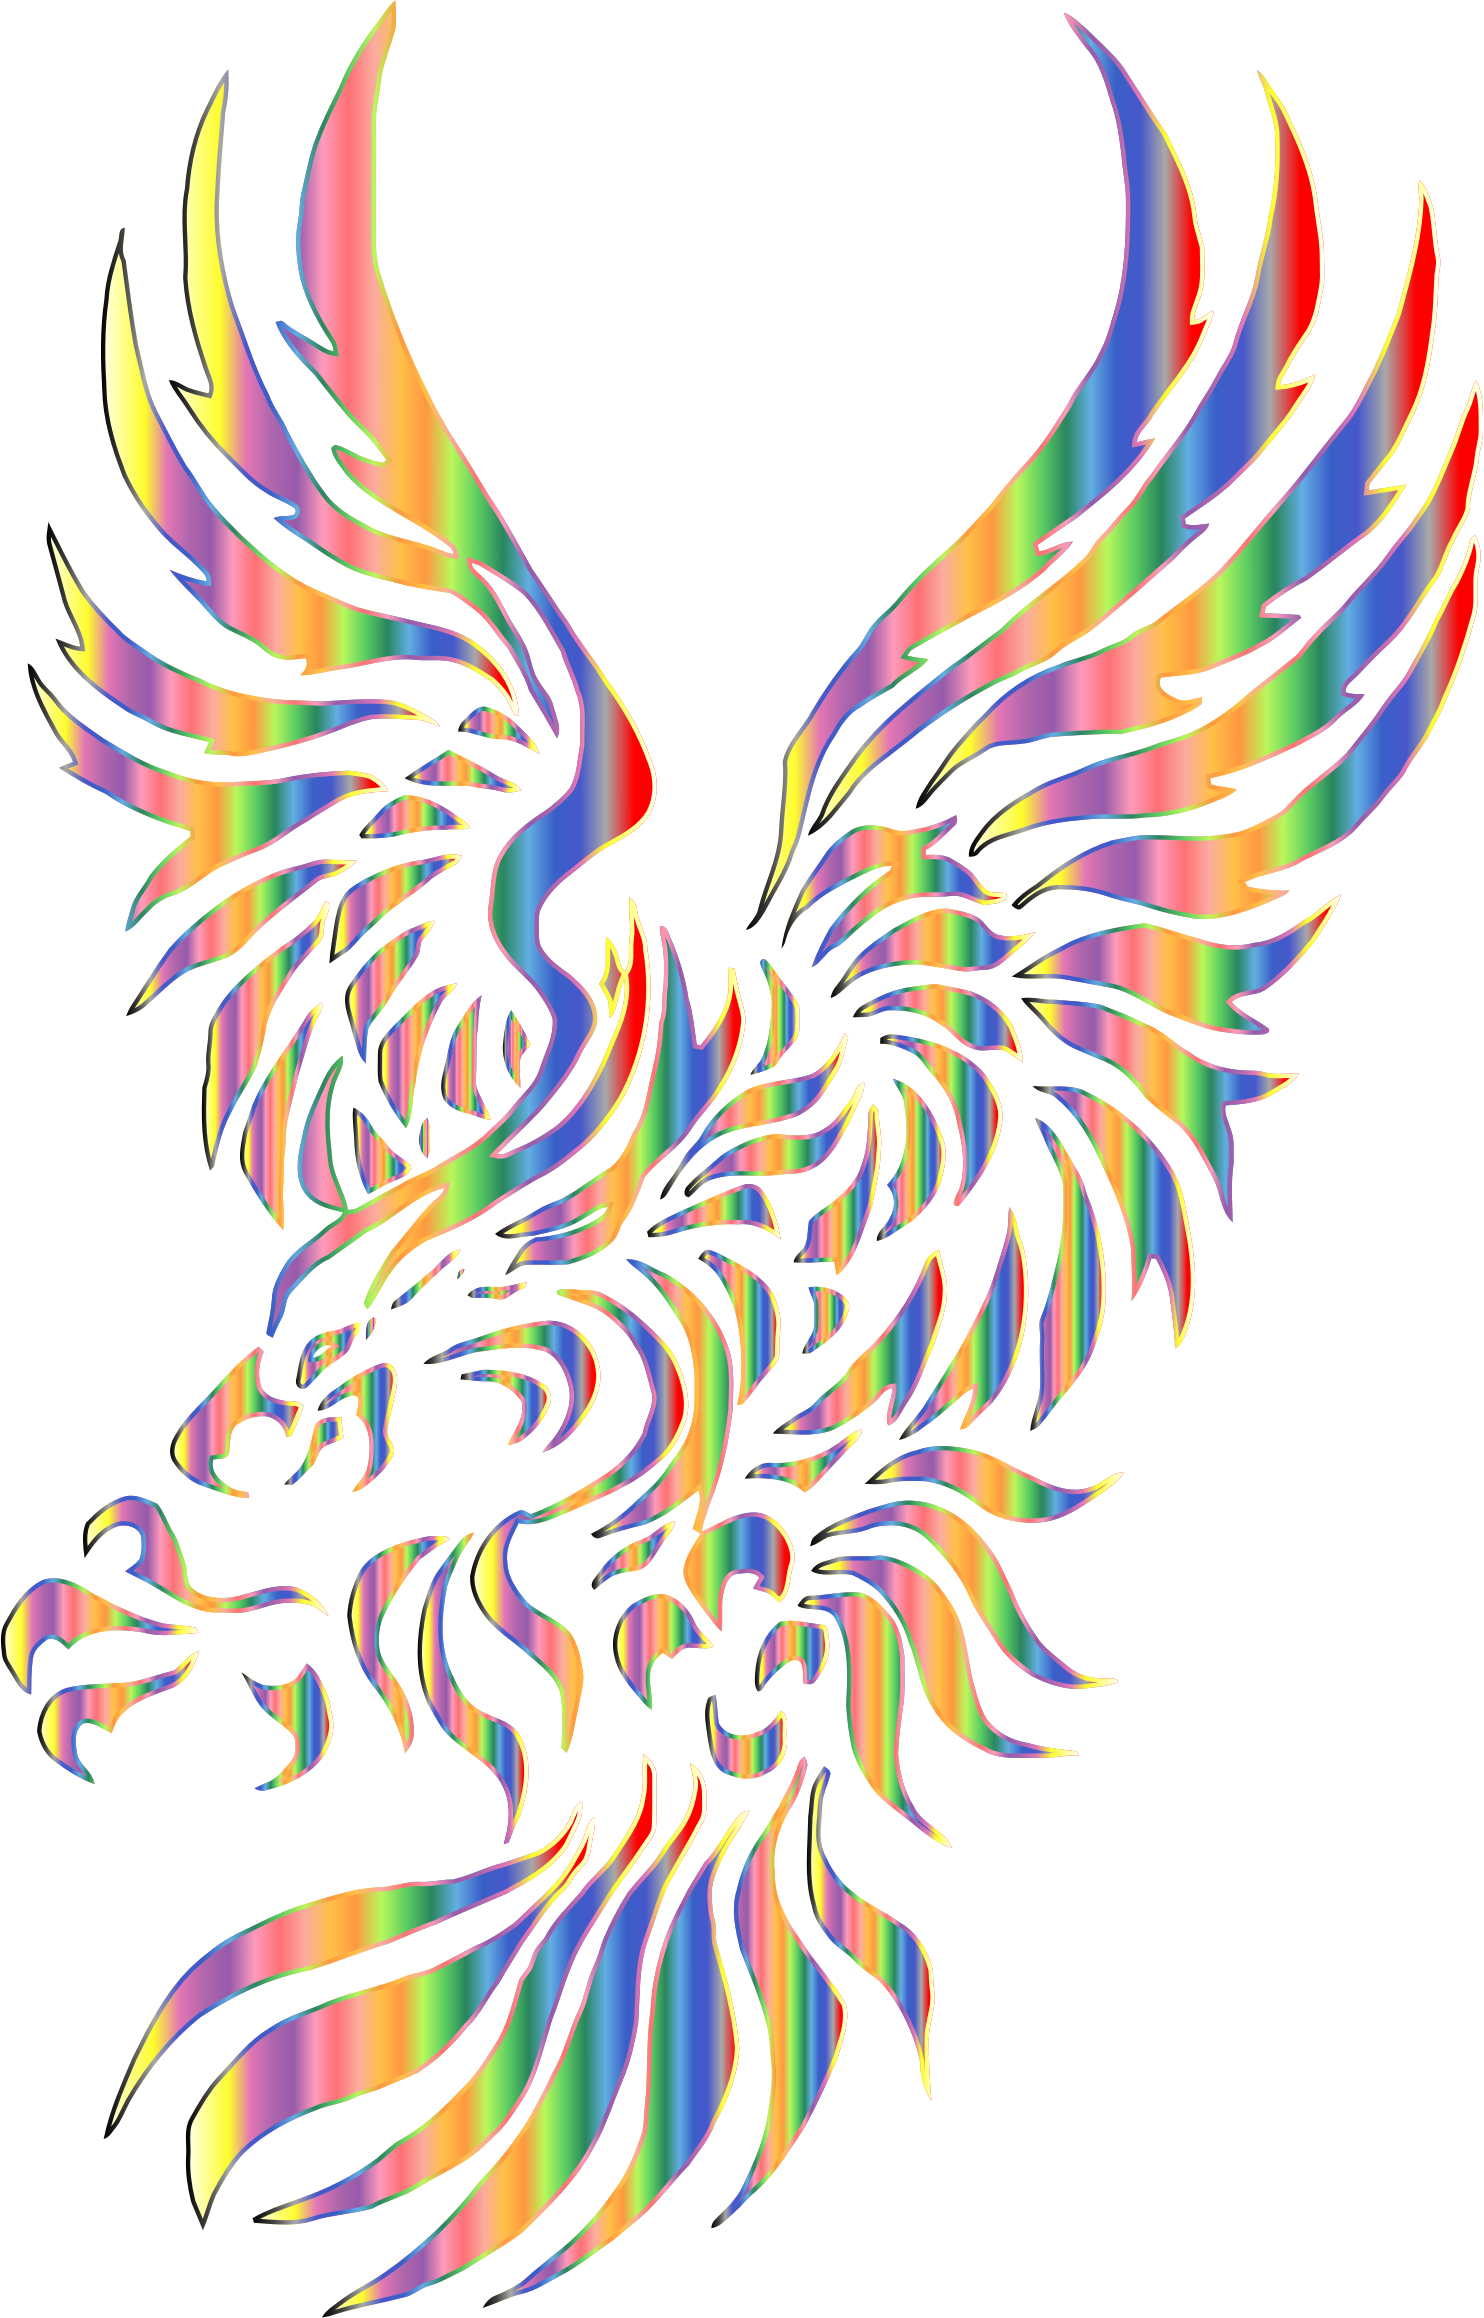 Chromatic Tribal Eagle 2 2 No Background by GDJ